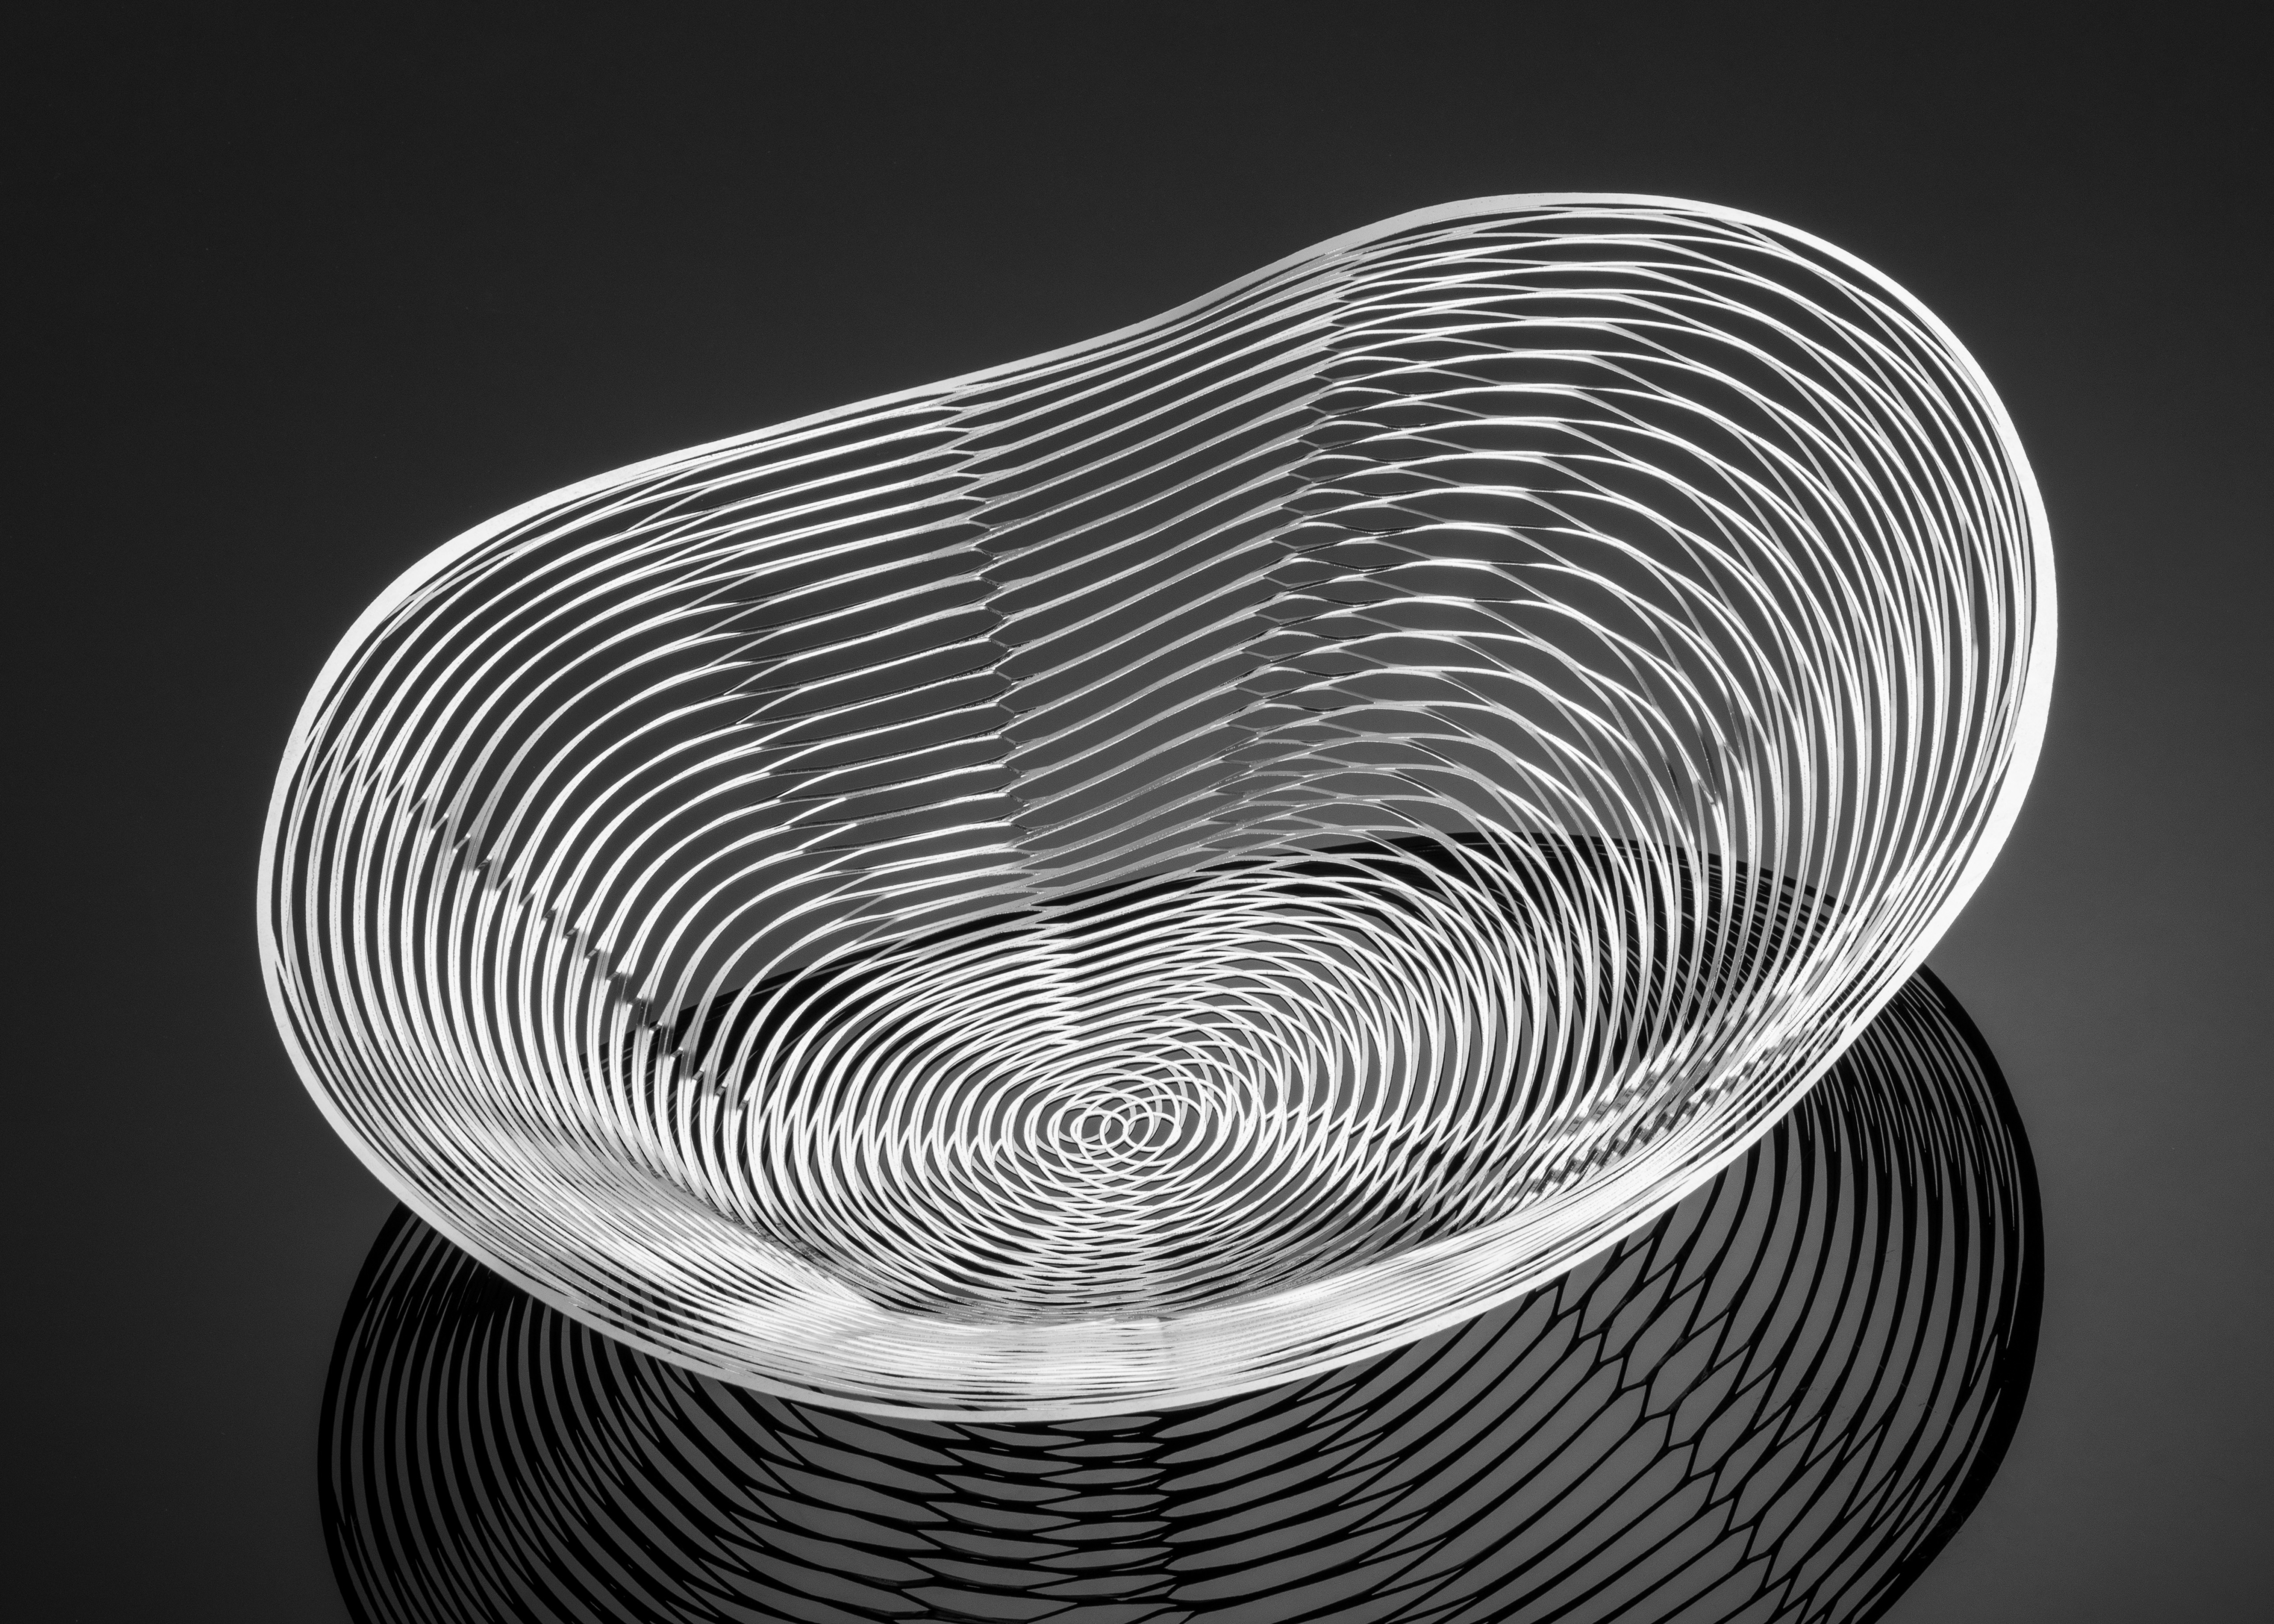 Ripple M by Metal Lace Art